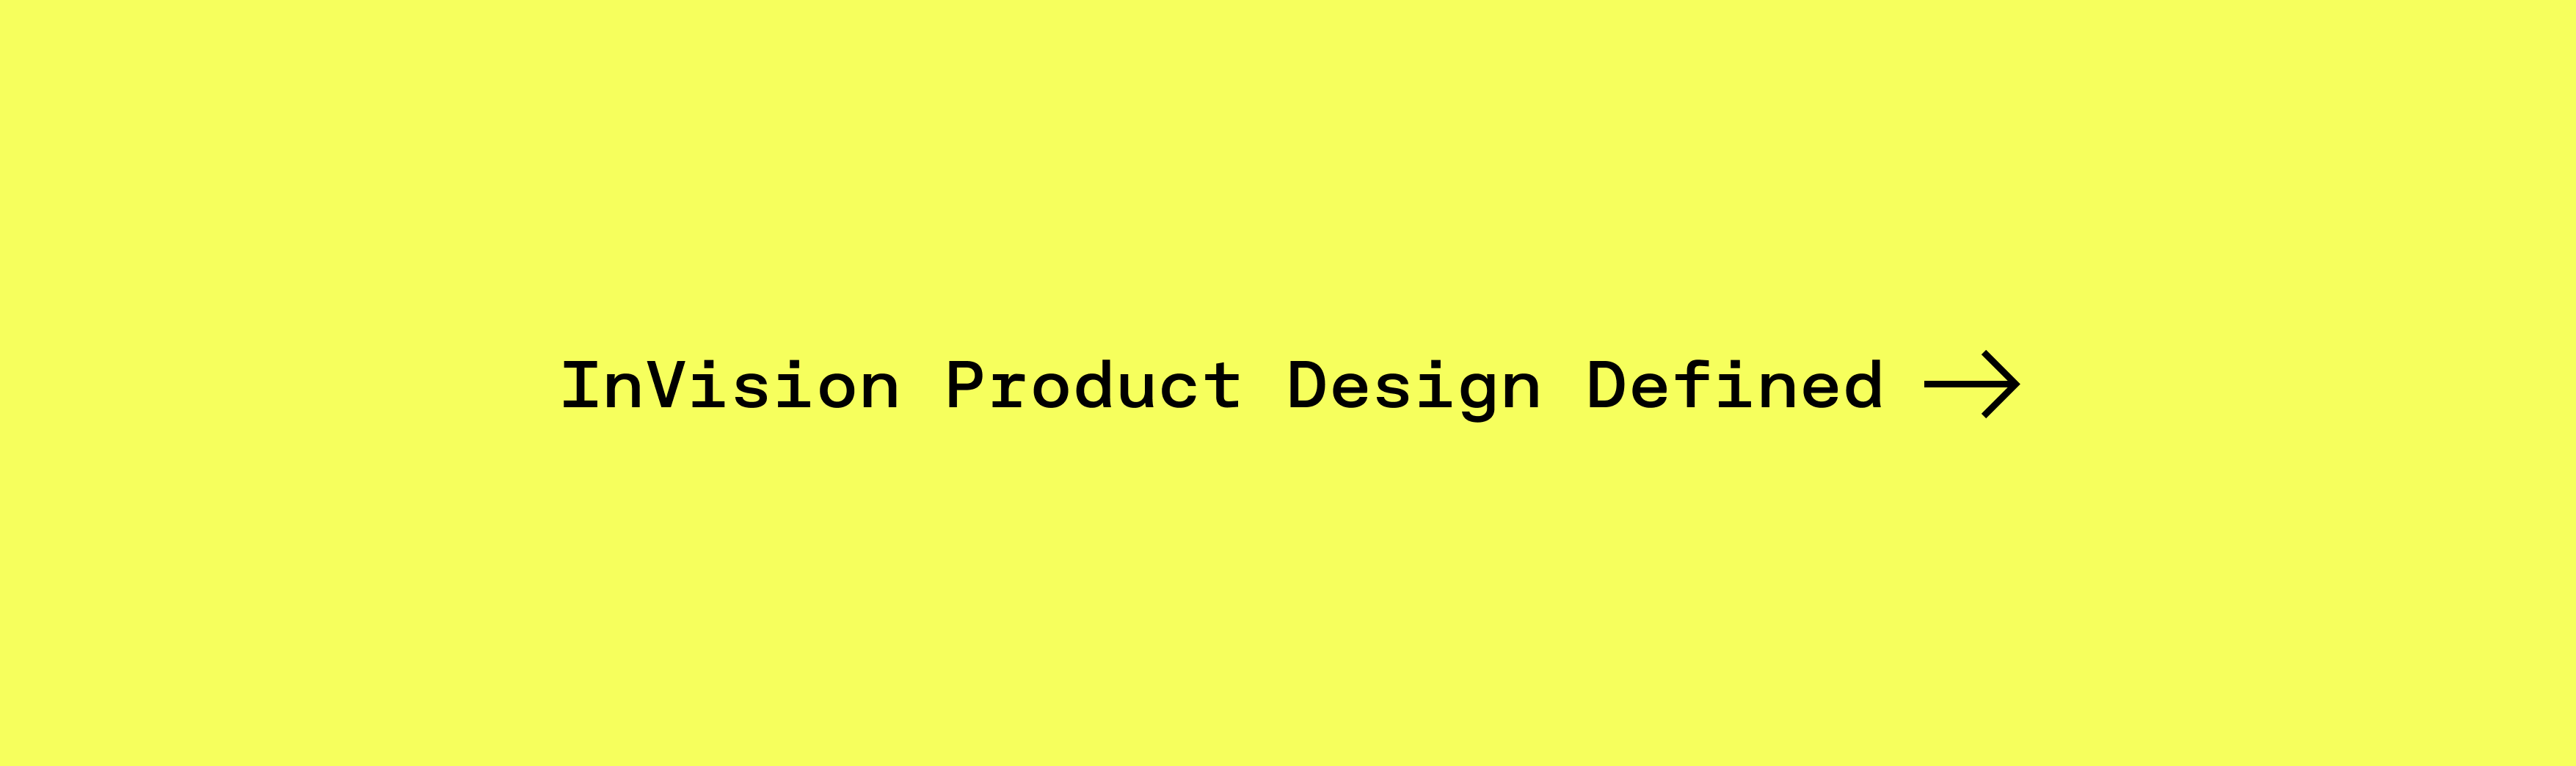 invision product design defined